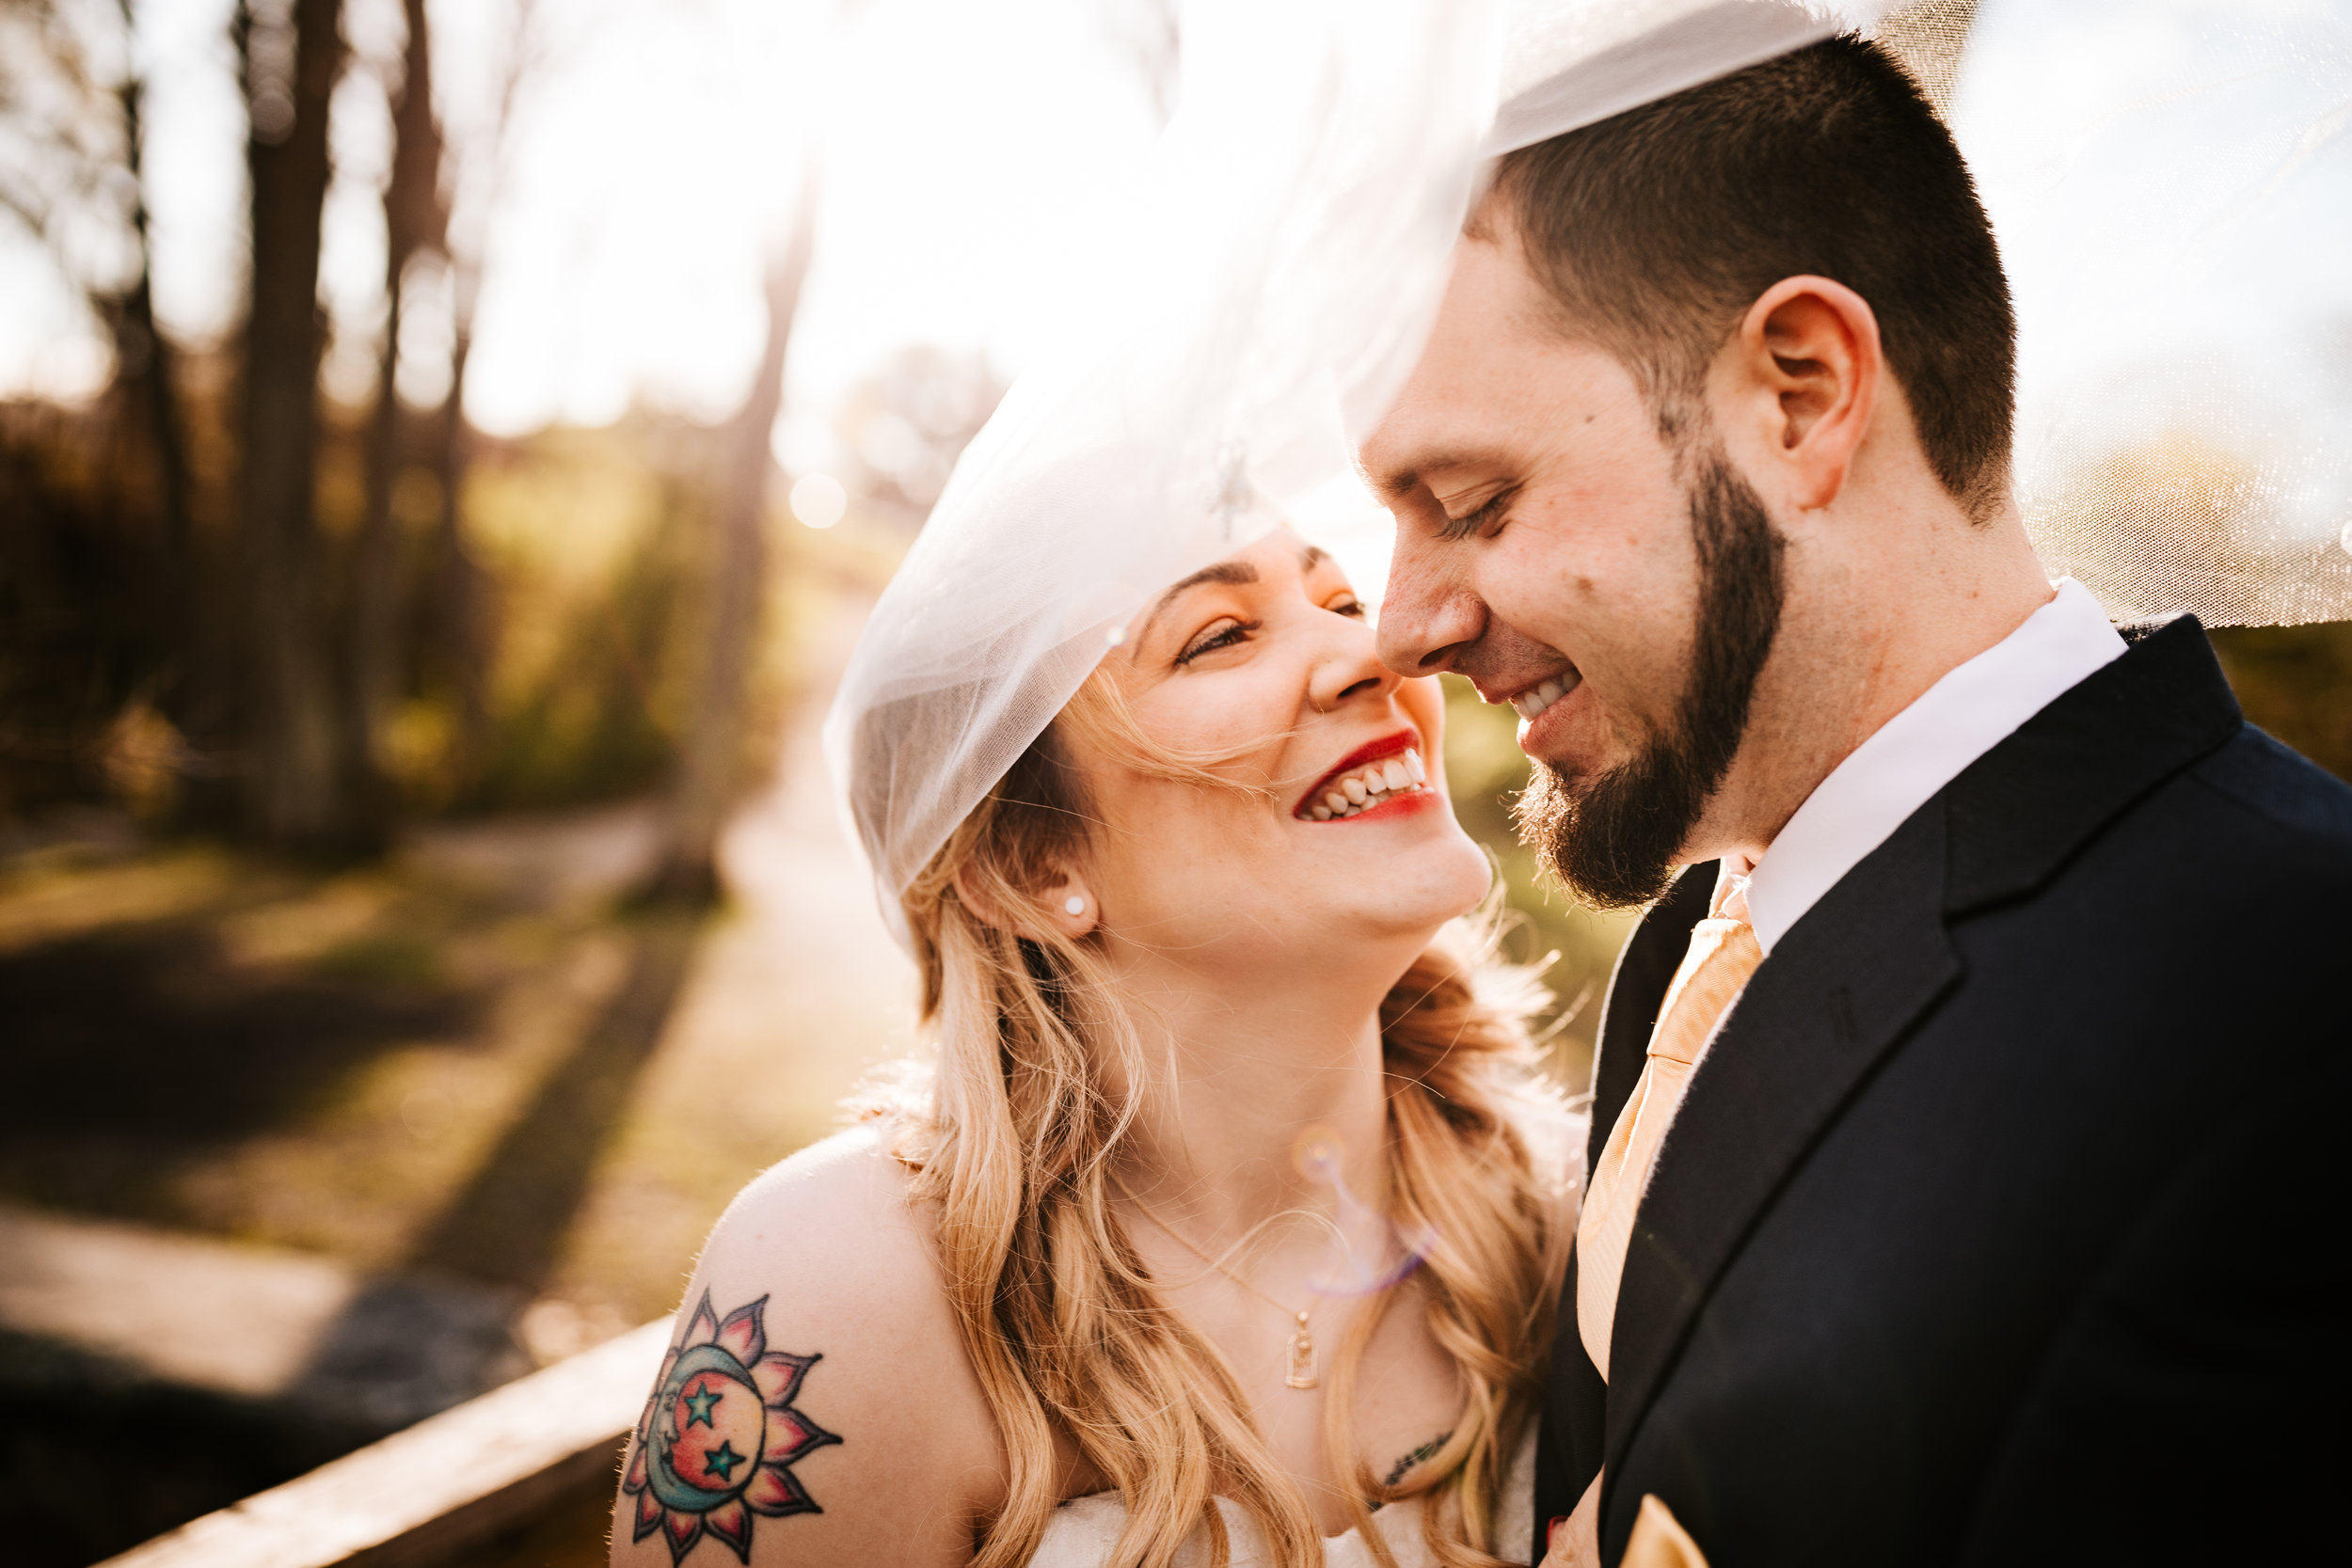 Smiling tattooed bride and groom under veil at golden hour